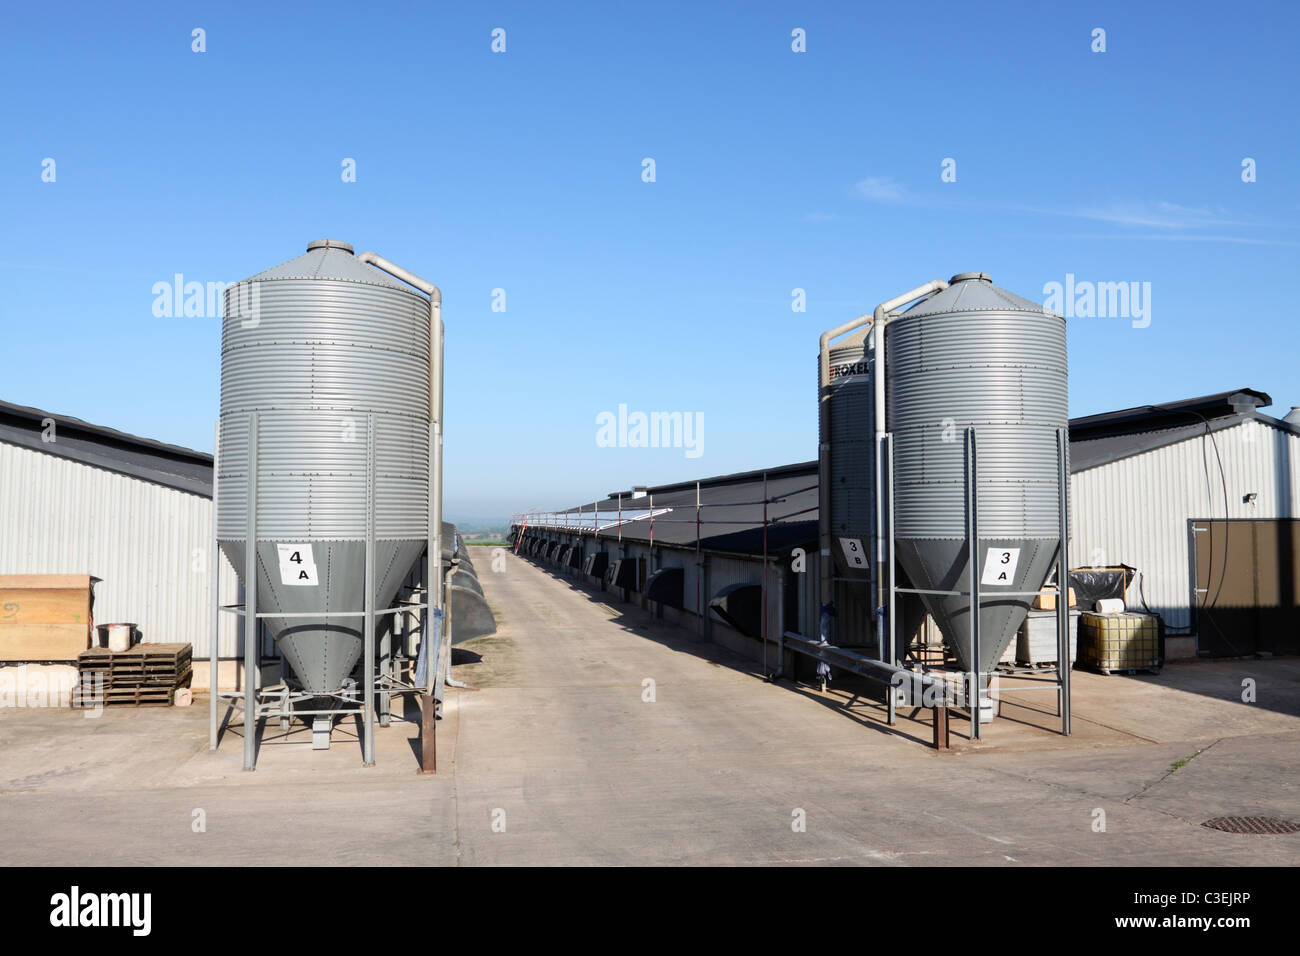 Feed silos outside broiler chicken sheds at a poultry farm in Shropshire, UK. - Stock Image